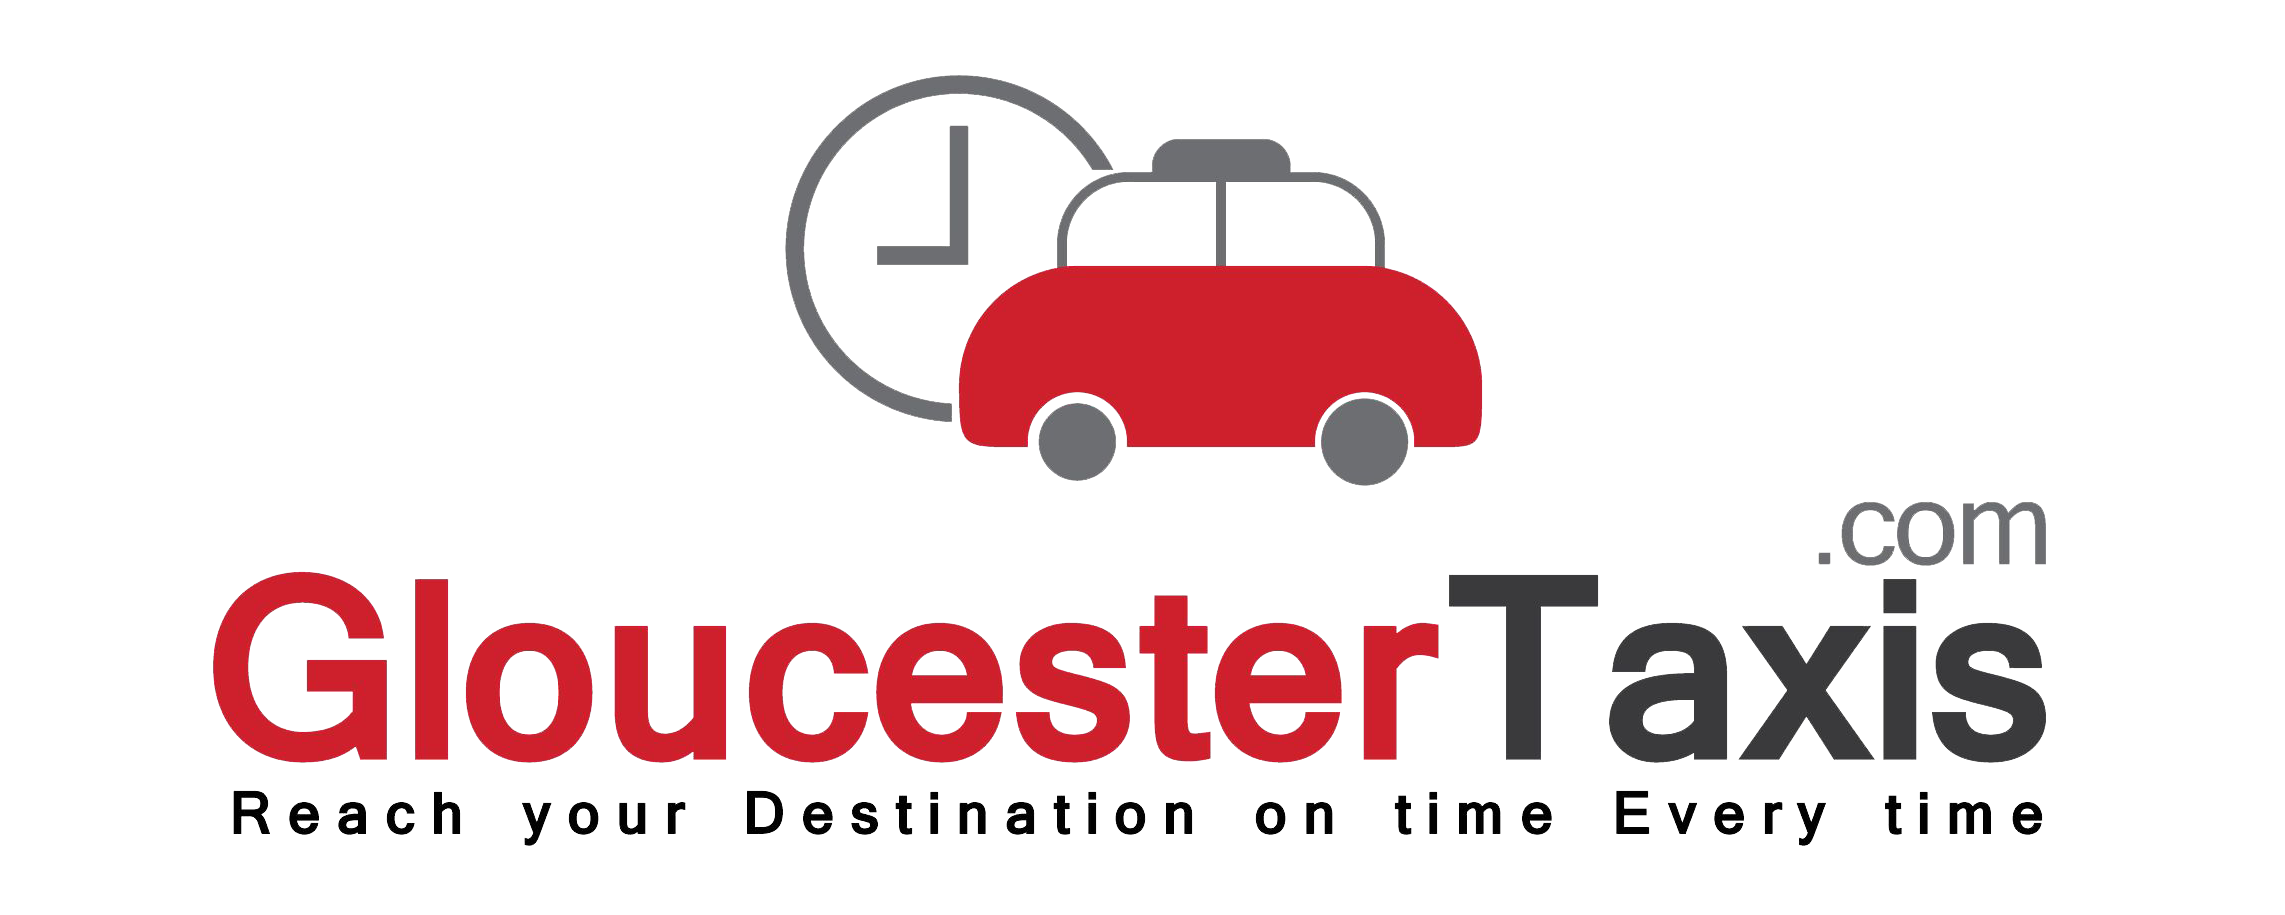 Taxis In Gloucester UK | Taxis In Gloucestershire | Local Taxi Service Gloucester